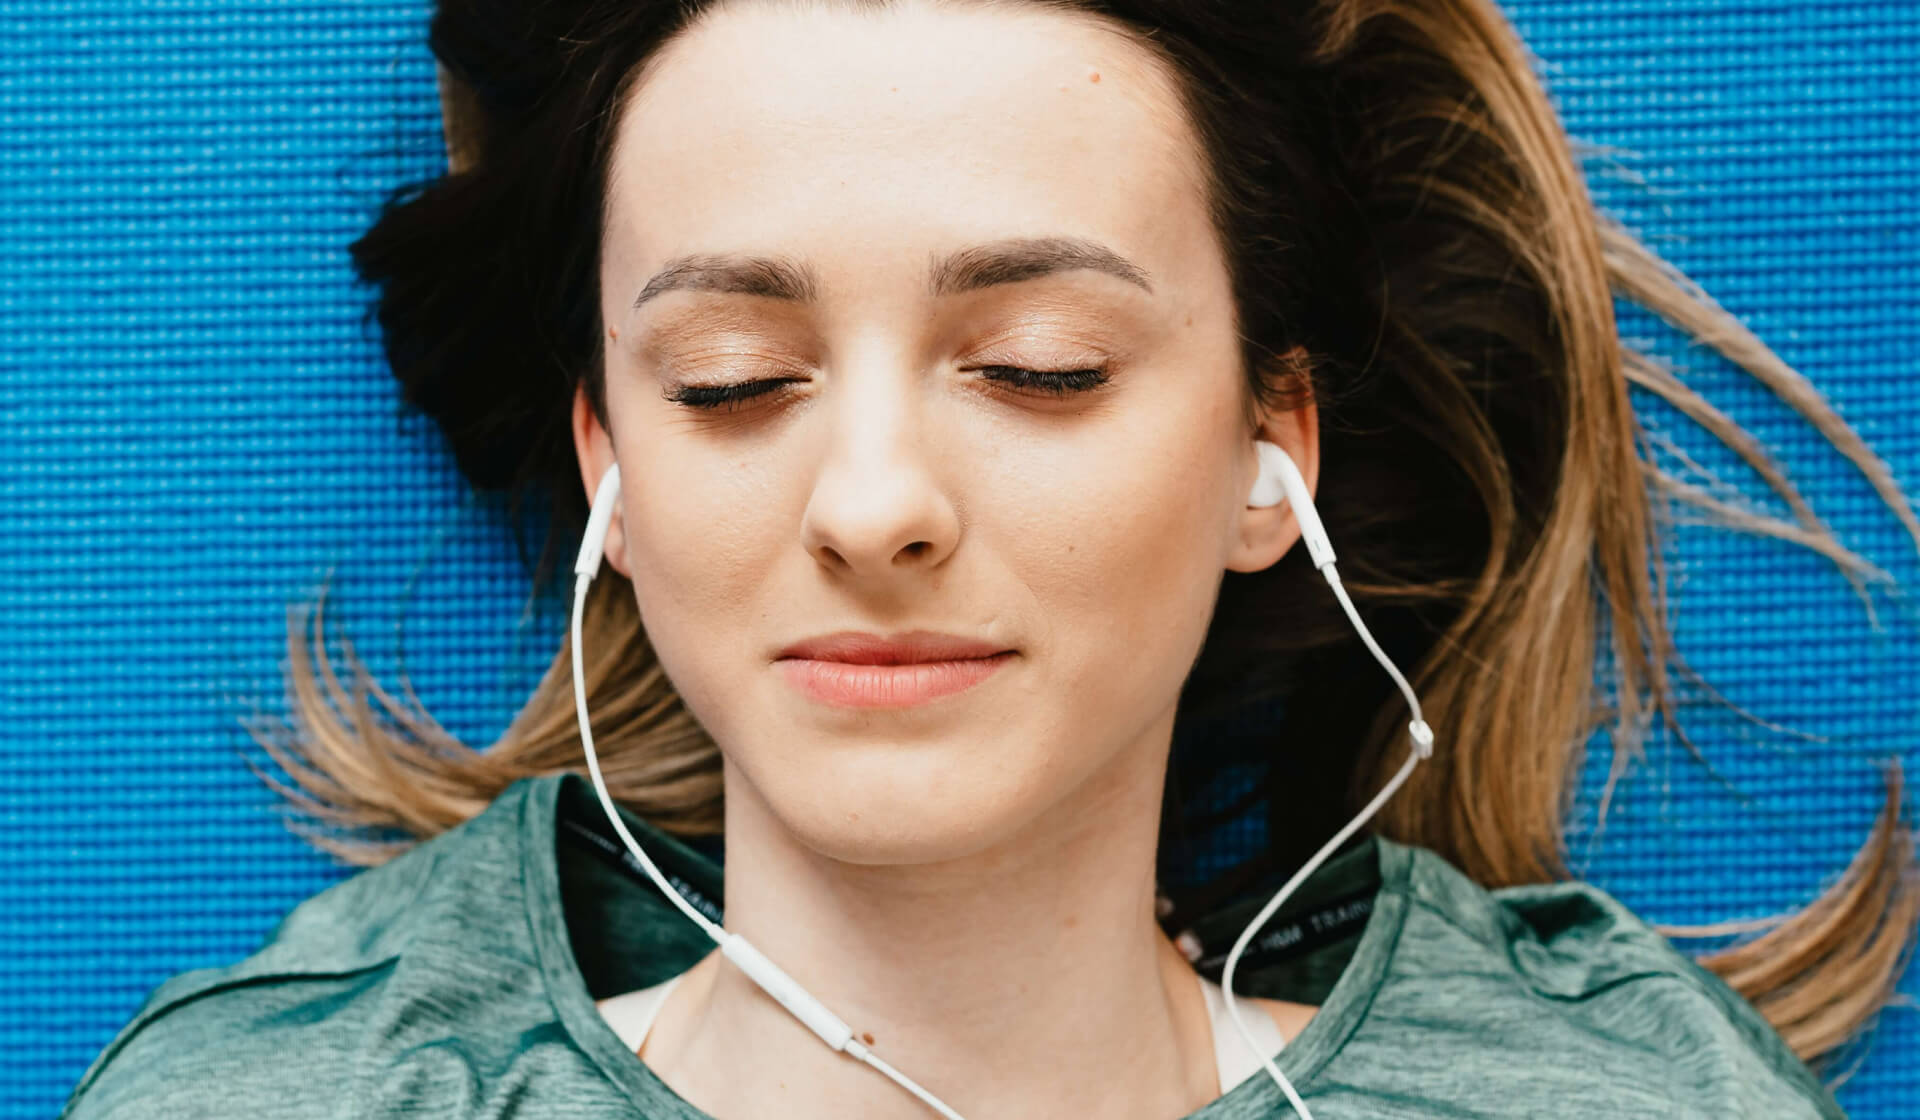 Close up of a woman's face from above, wearing a green shirt and laying on a blue yoga mat with headphones in her ears and her eyes closed, listening to a yoga nidra practice